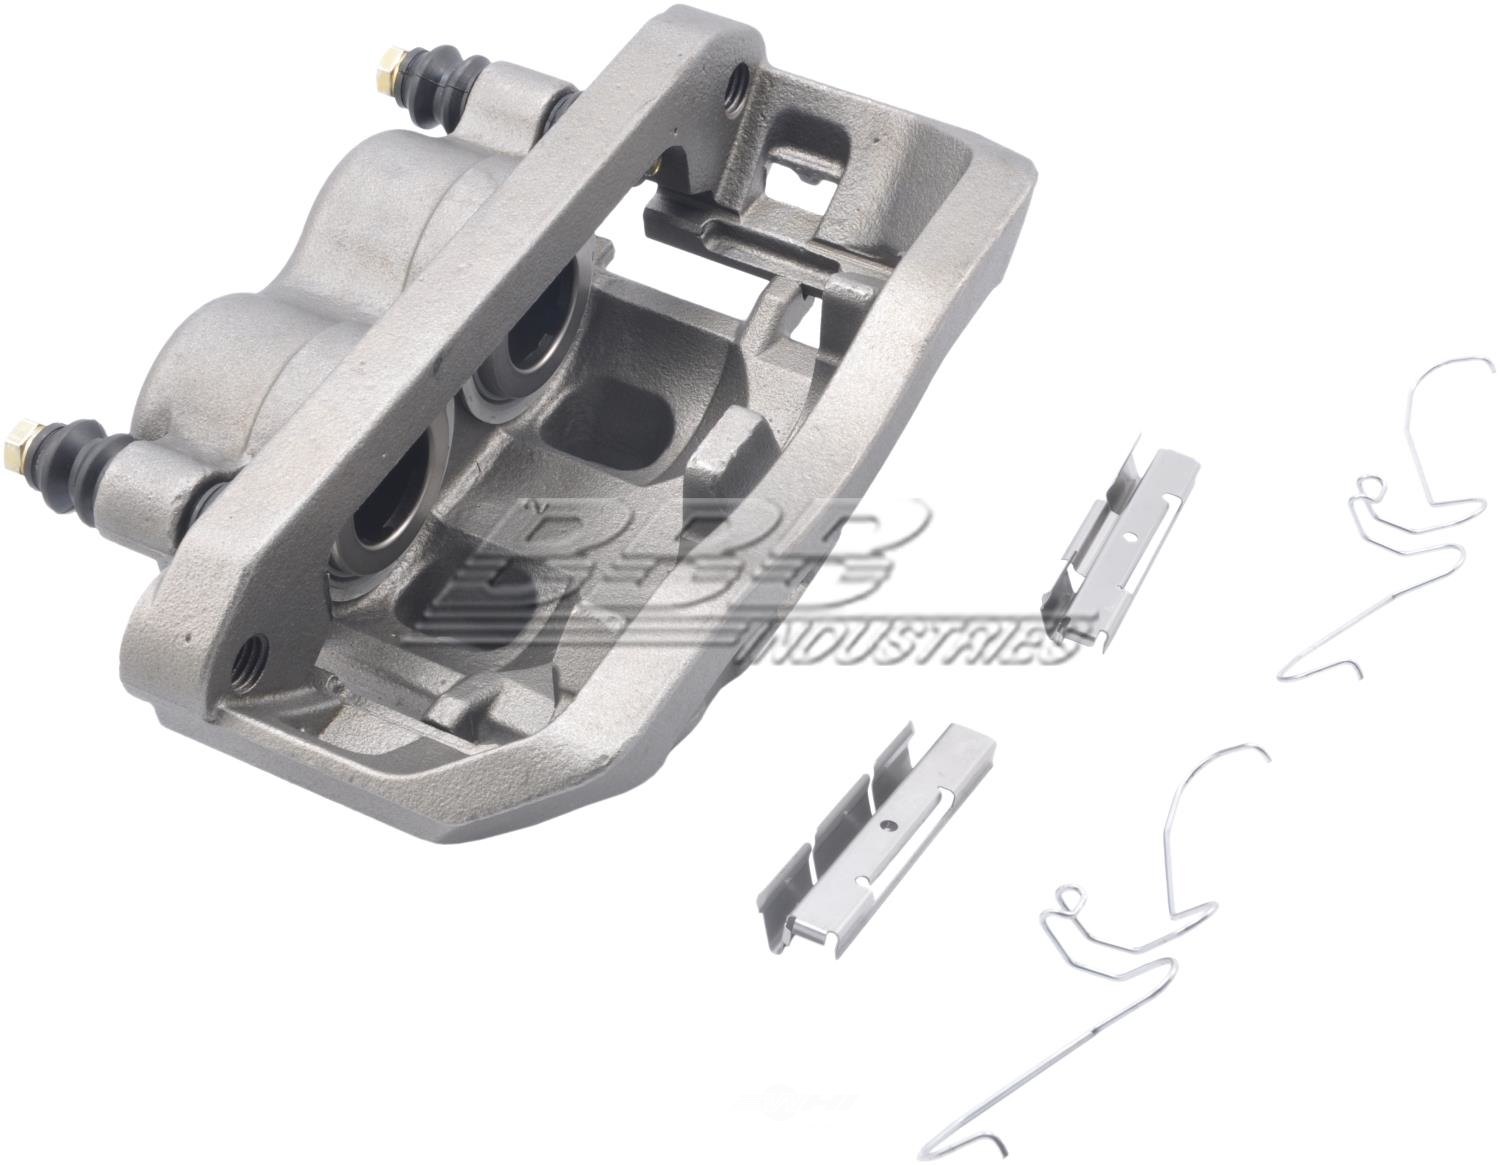 BBB INDUSTRIES - Reman Caliper w/ Installation Hardware - BBA 99-17940A